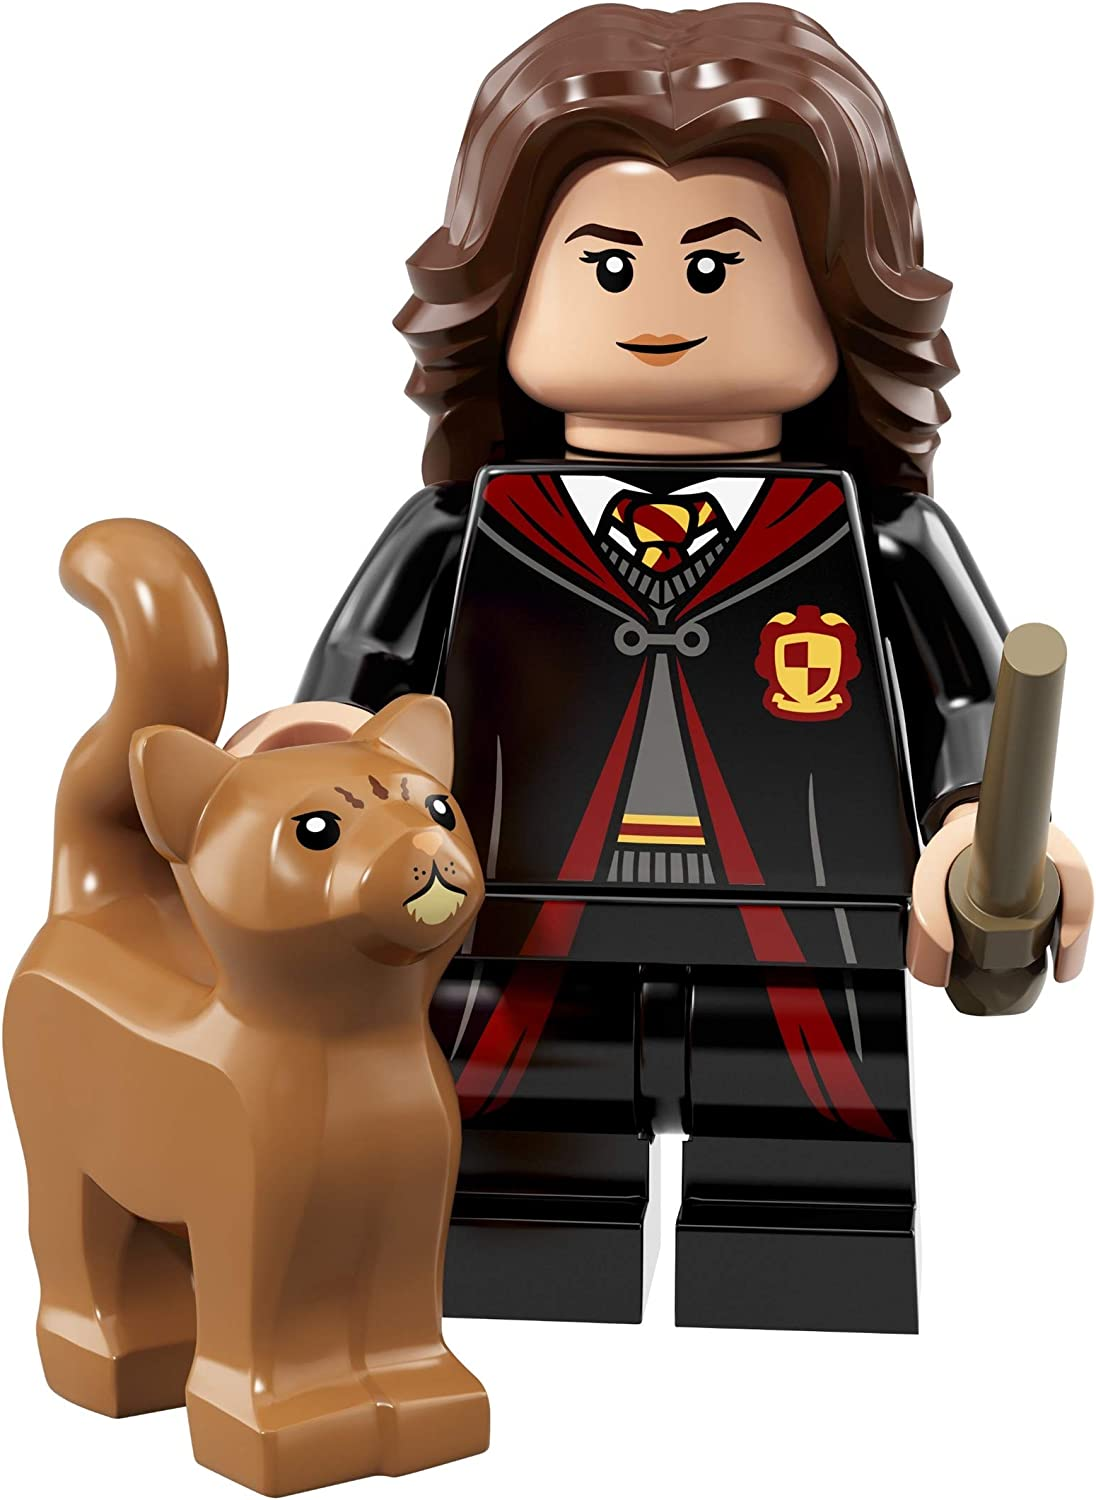 LEGO Harry Potter Series - Hermione Granger - 71022